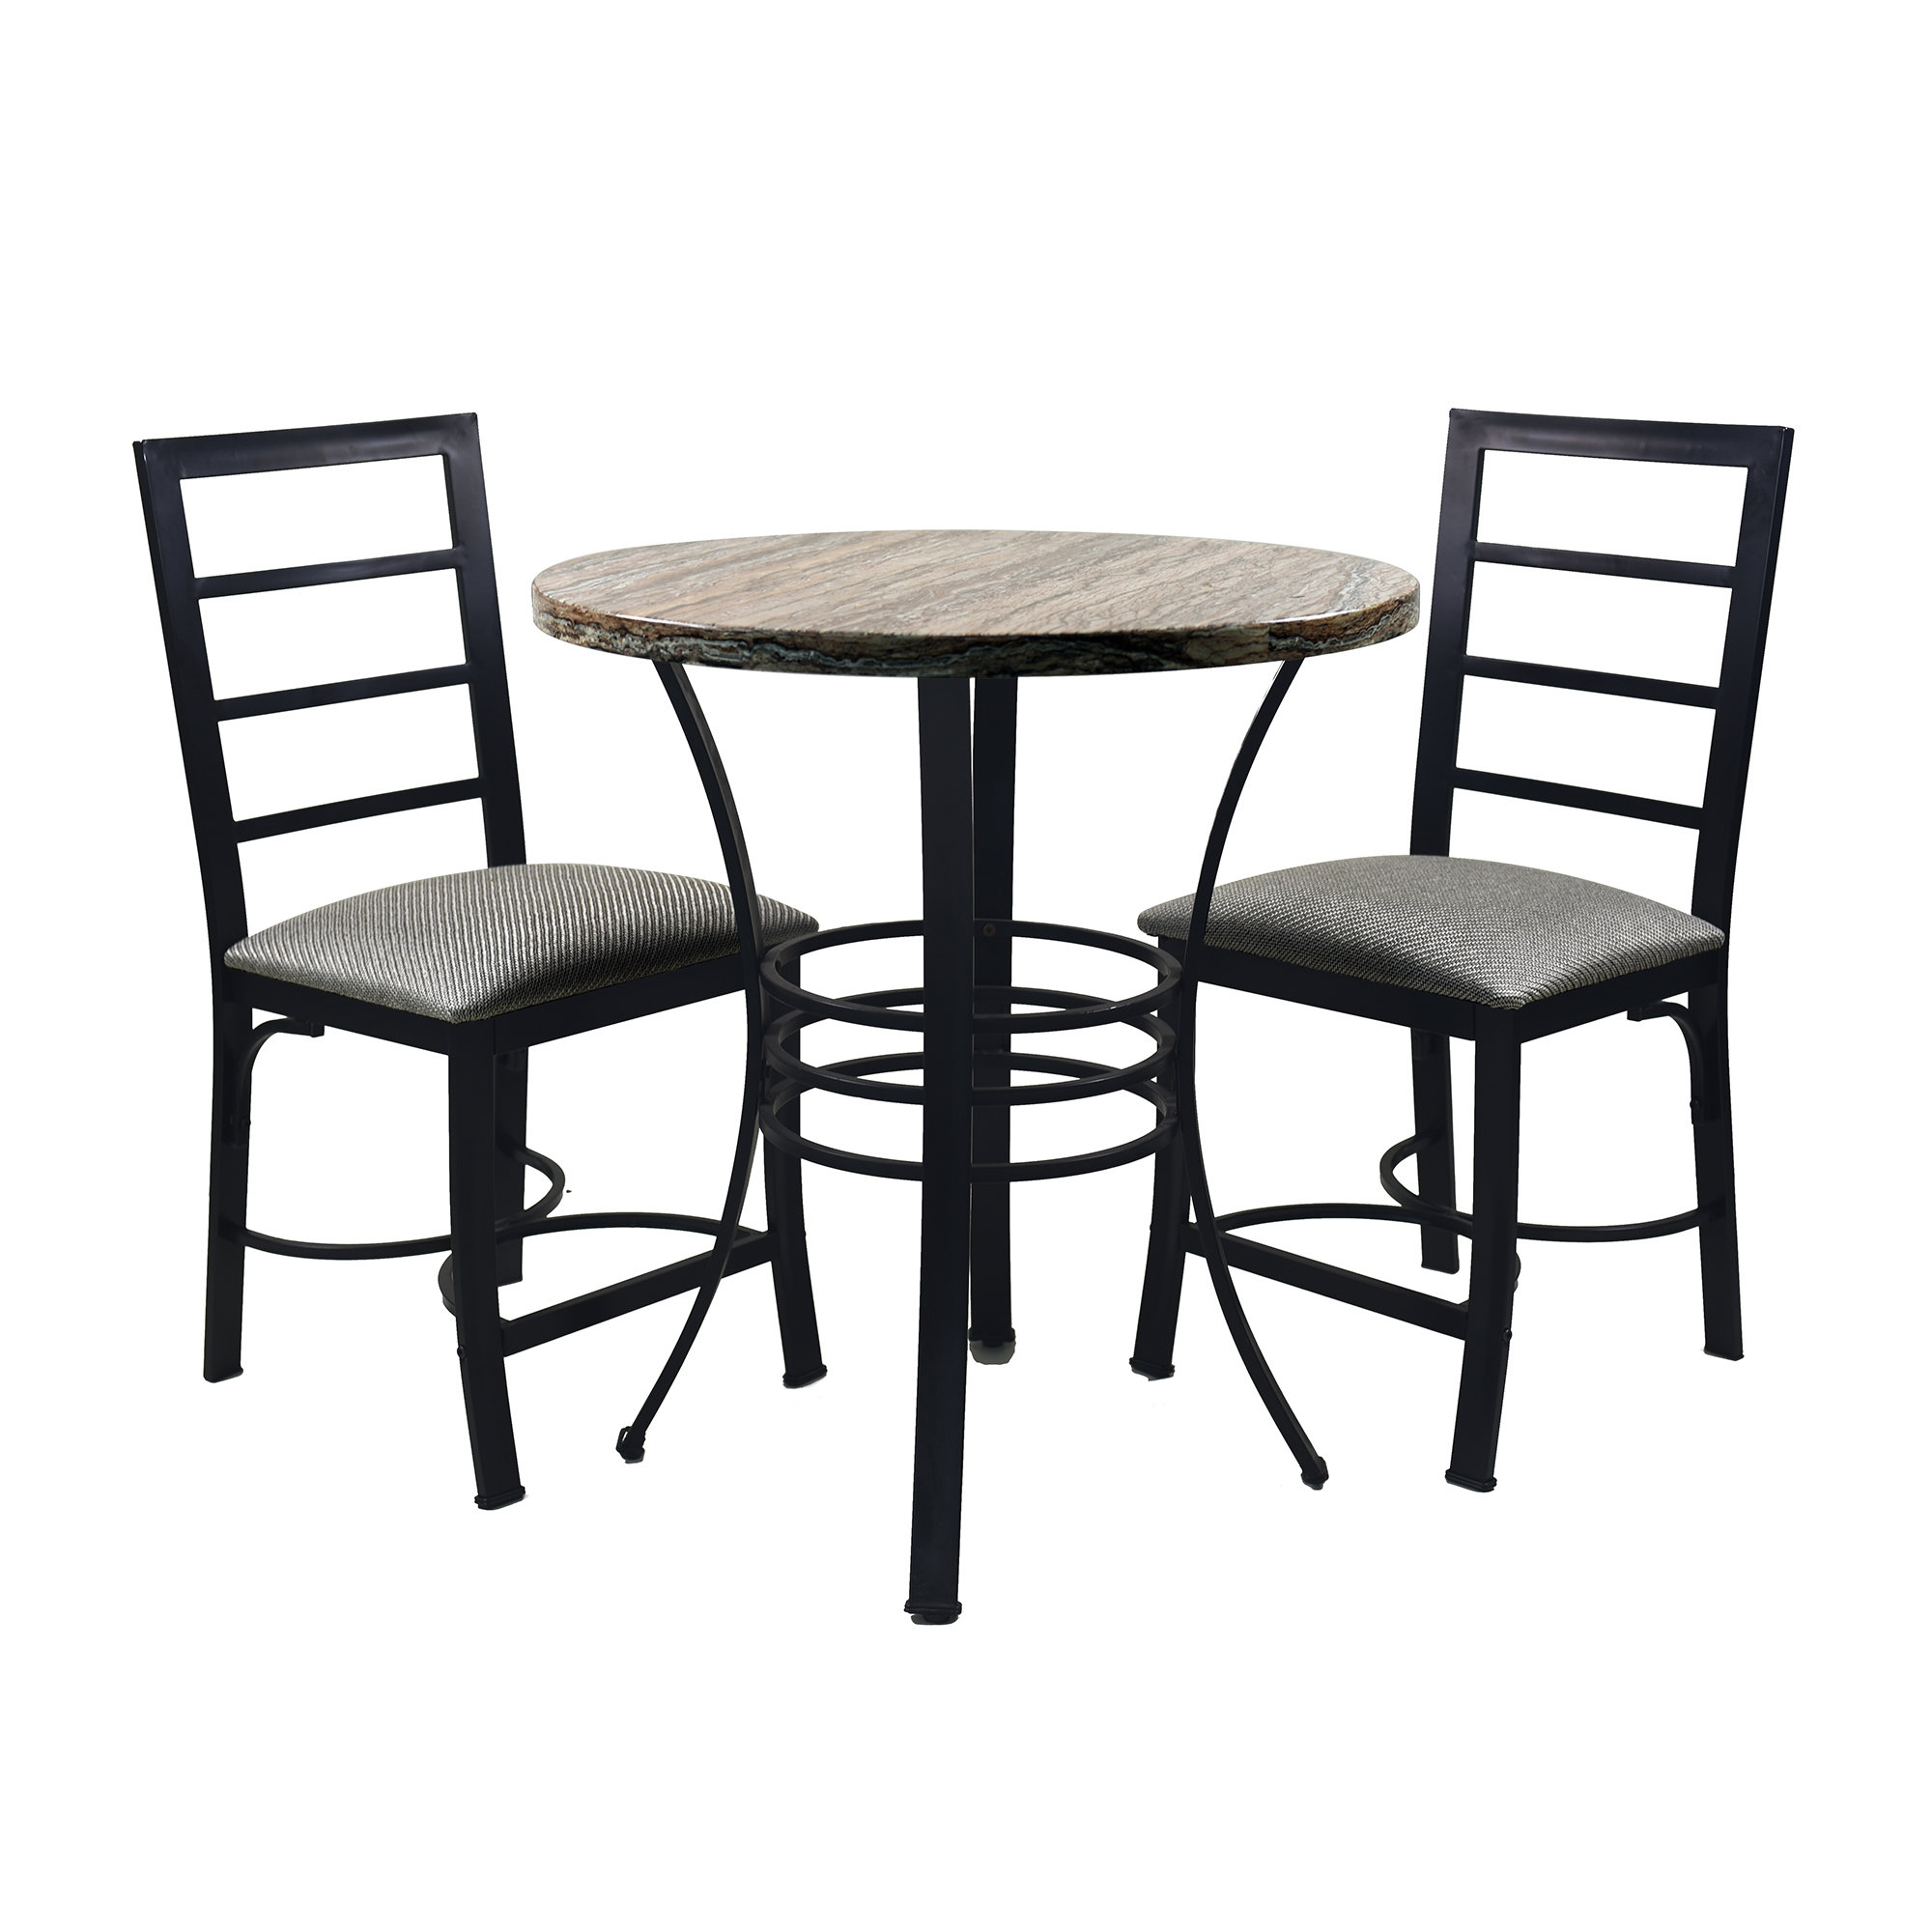 Casillas Bistro 3 Piece Dining Set In Most Recently Released Kinsler 3 Piece Bistro Sets (View 8 of 20)